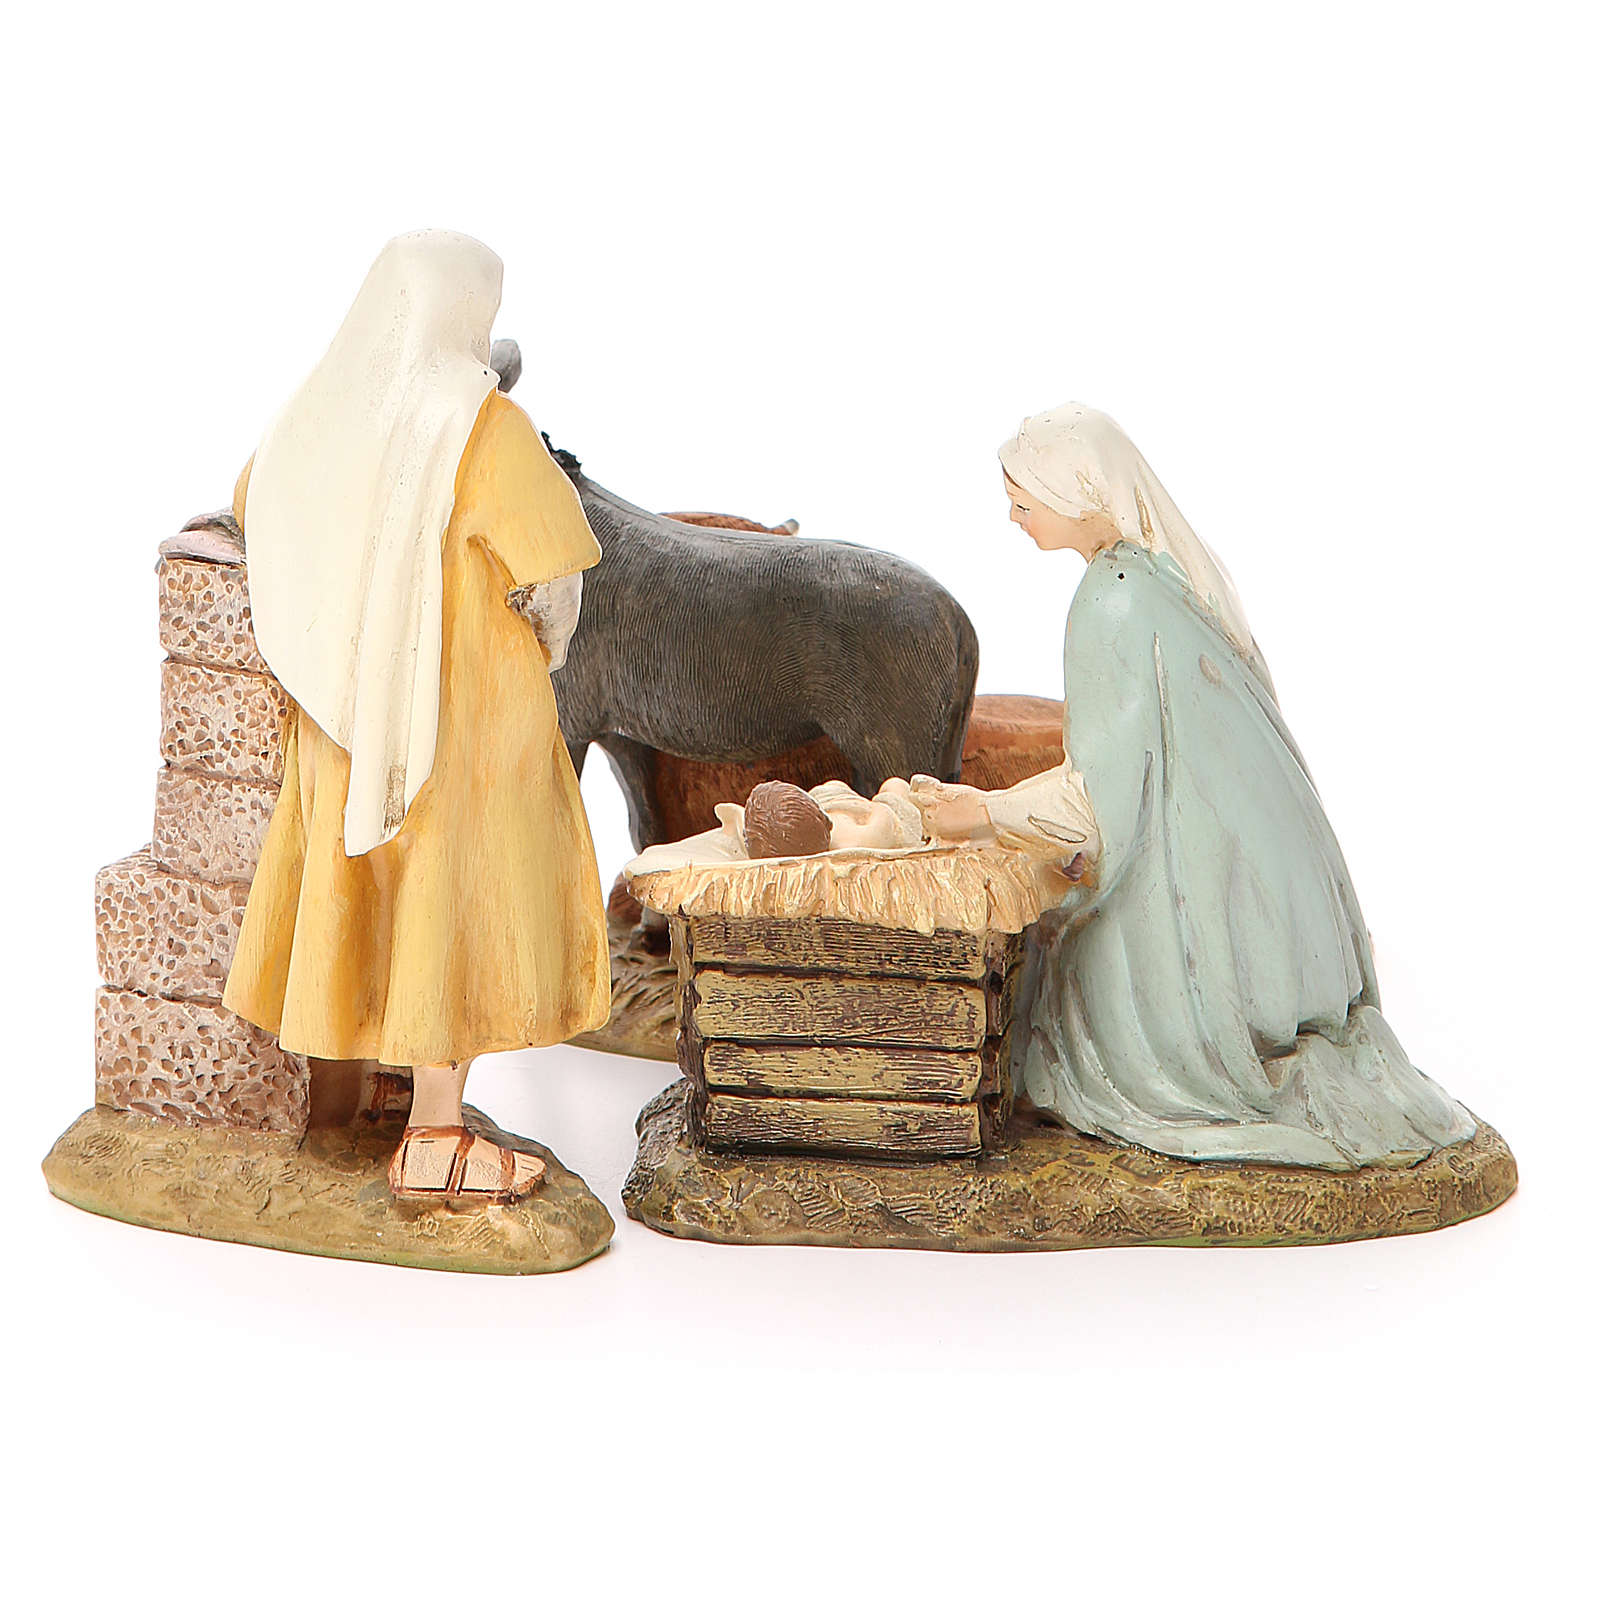 Nativity scene statue wayfarer with donkey in painted resin 10 cm low cost Landi brand 3